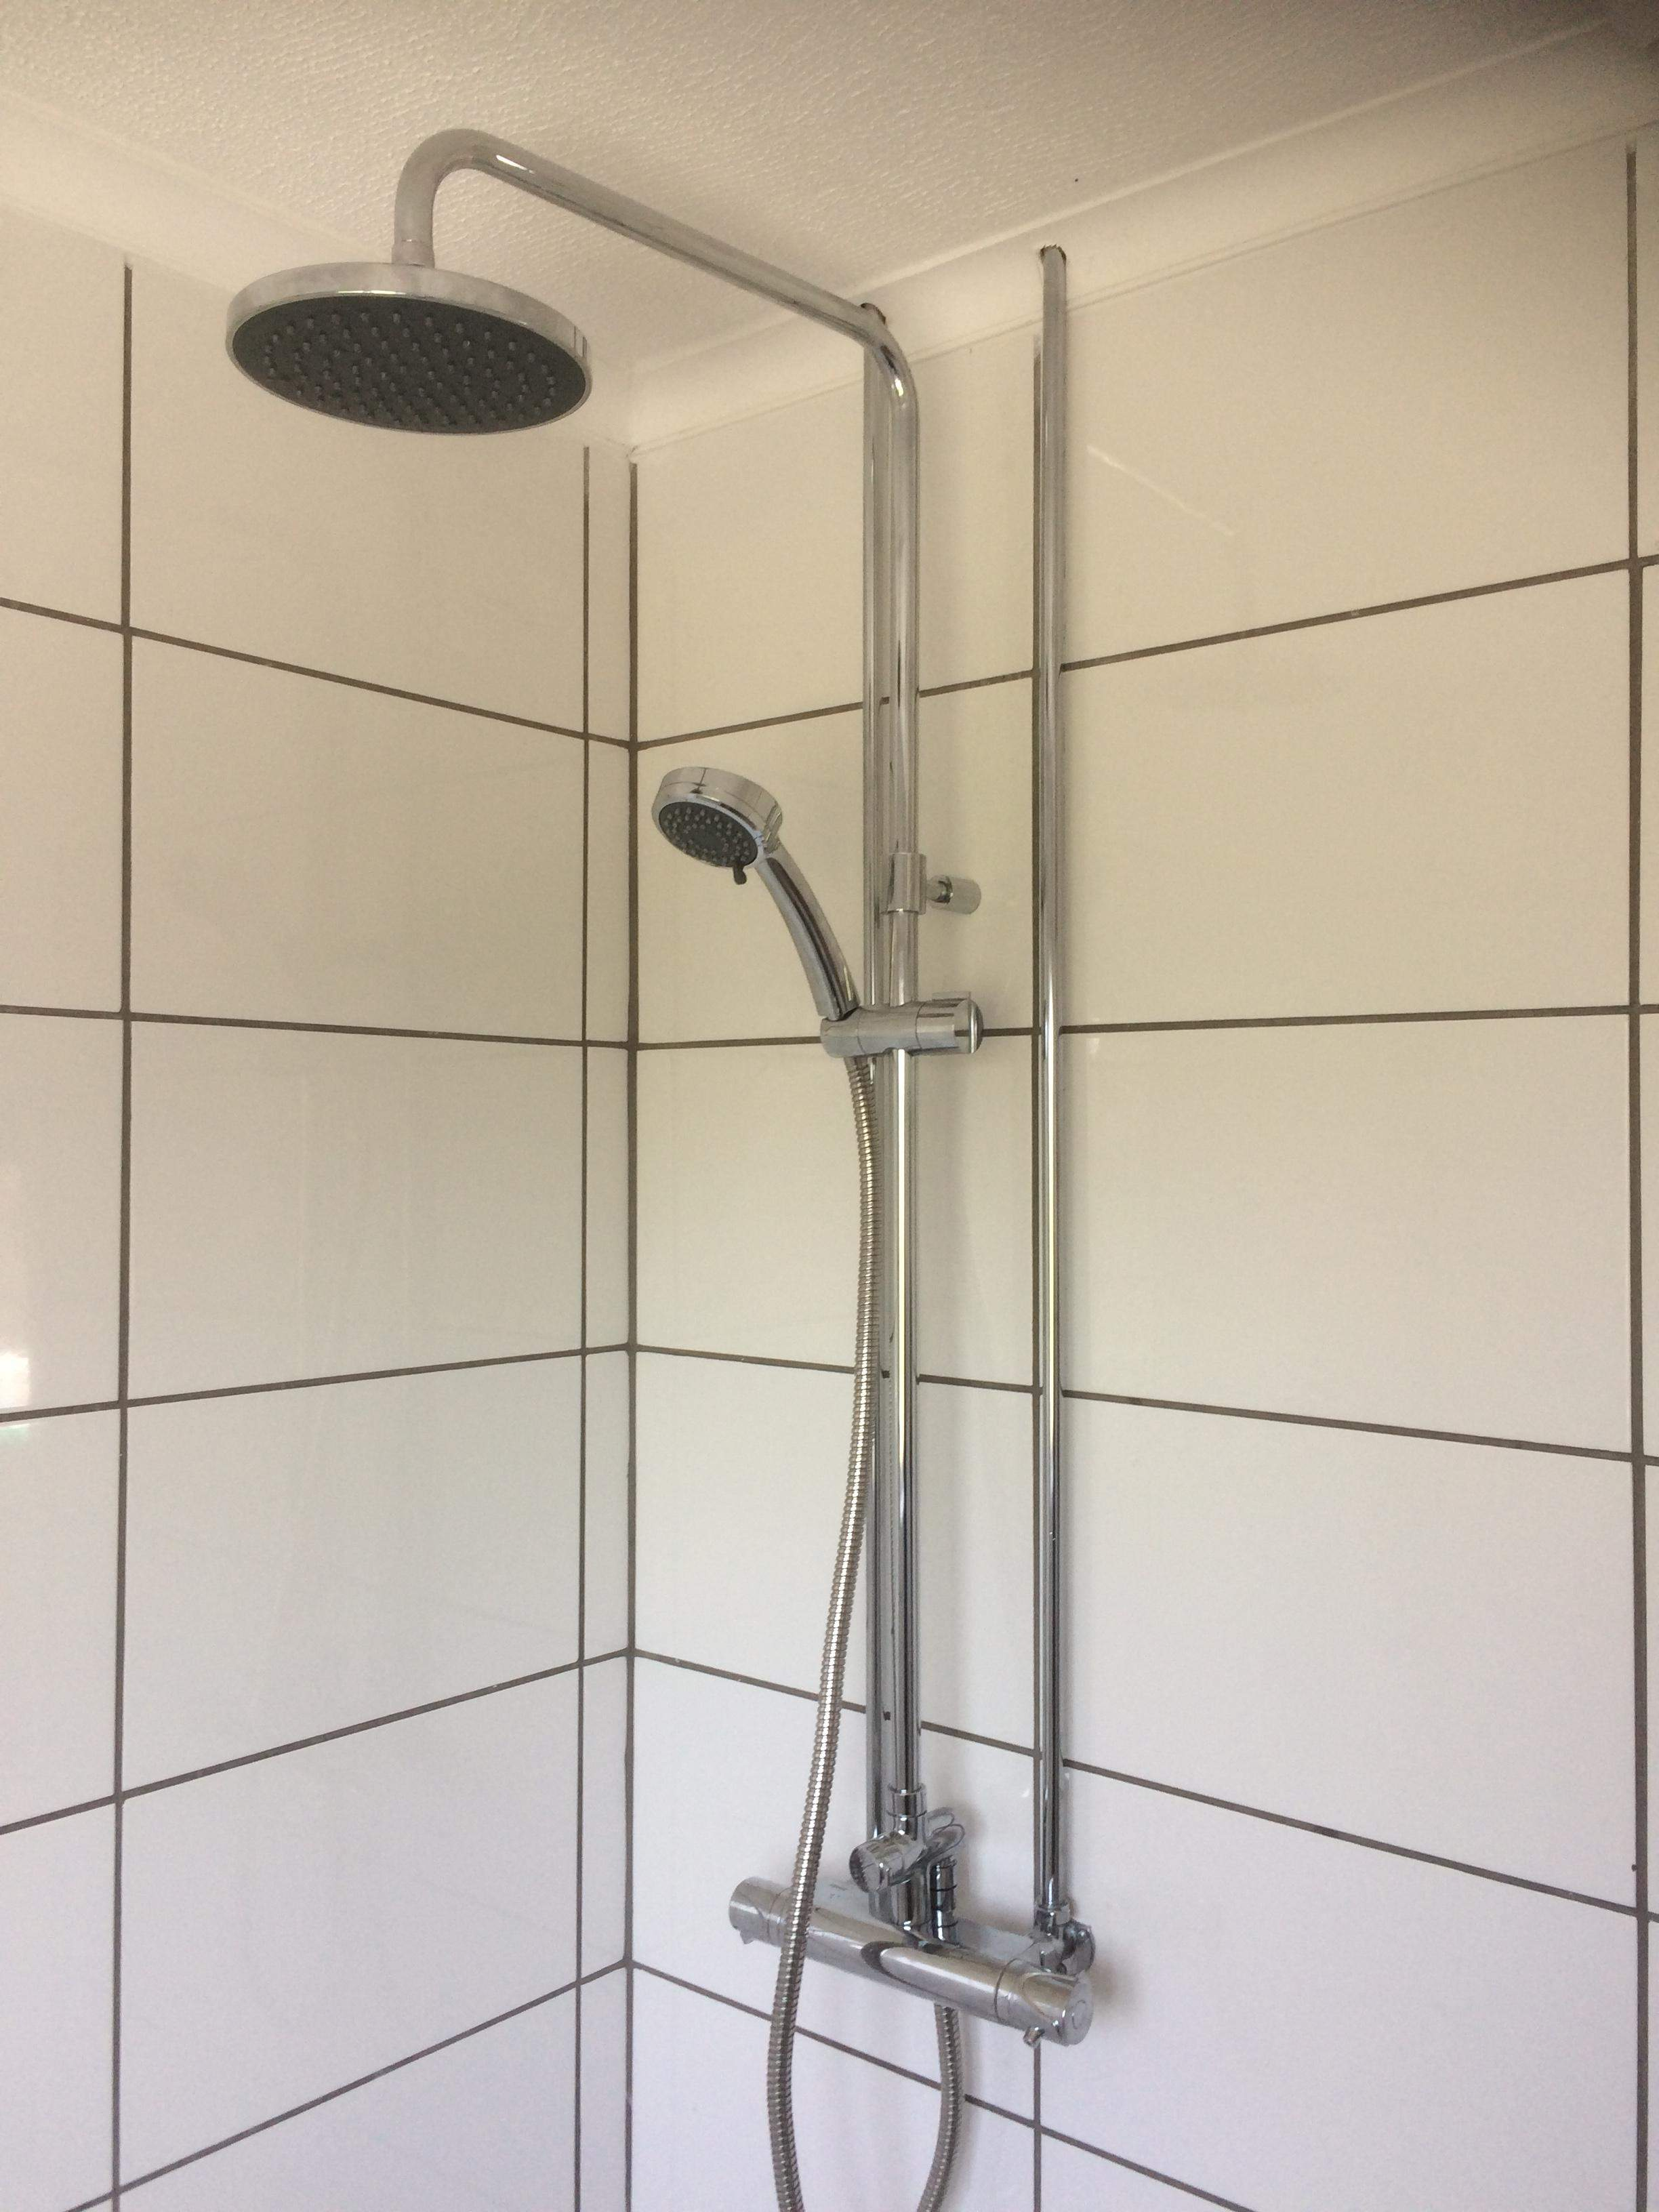 Triton bar shower + rainfall kit